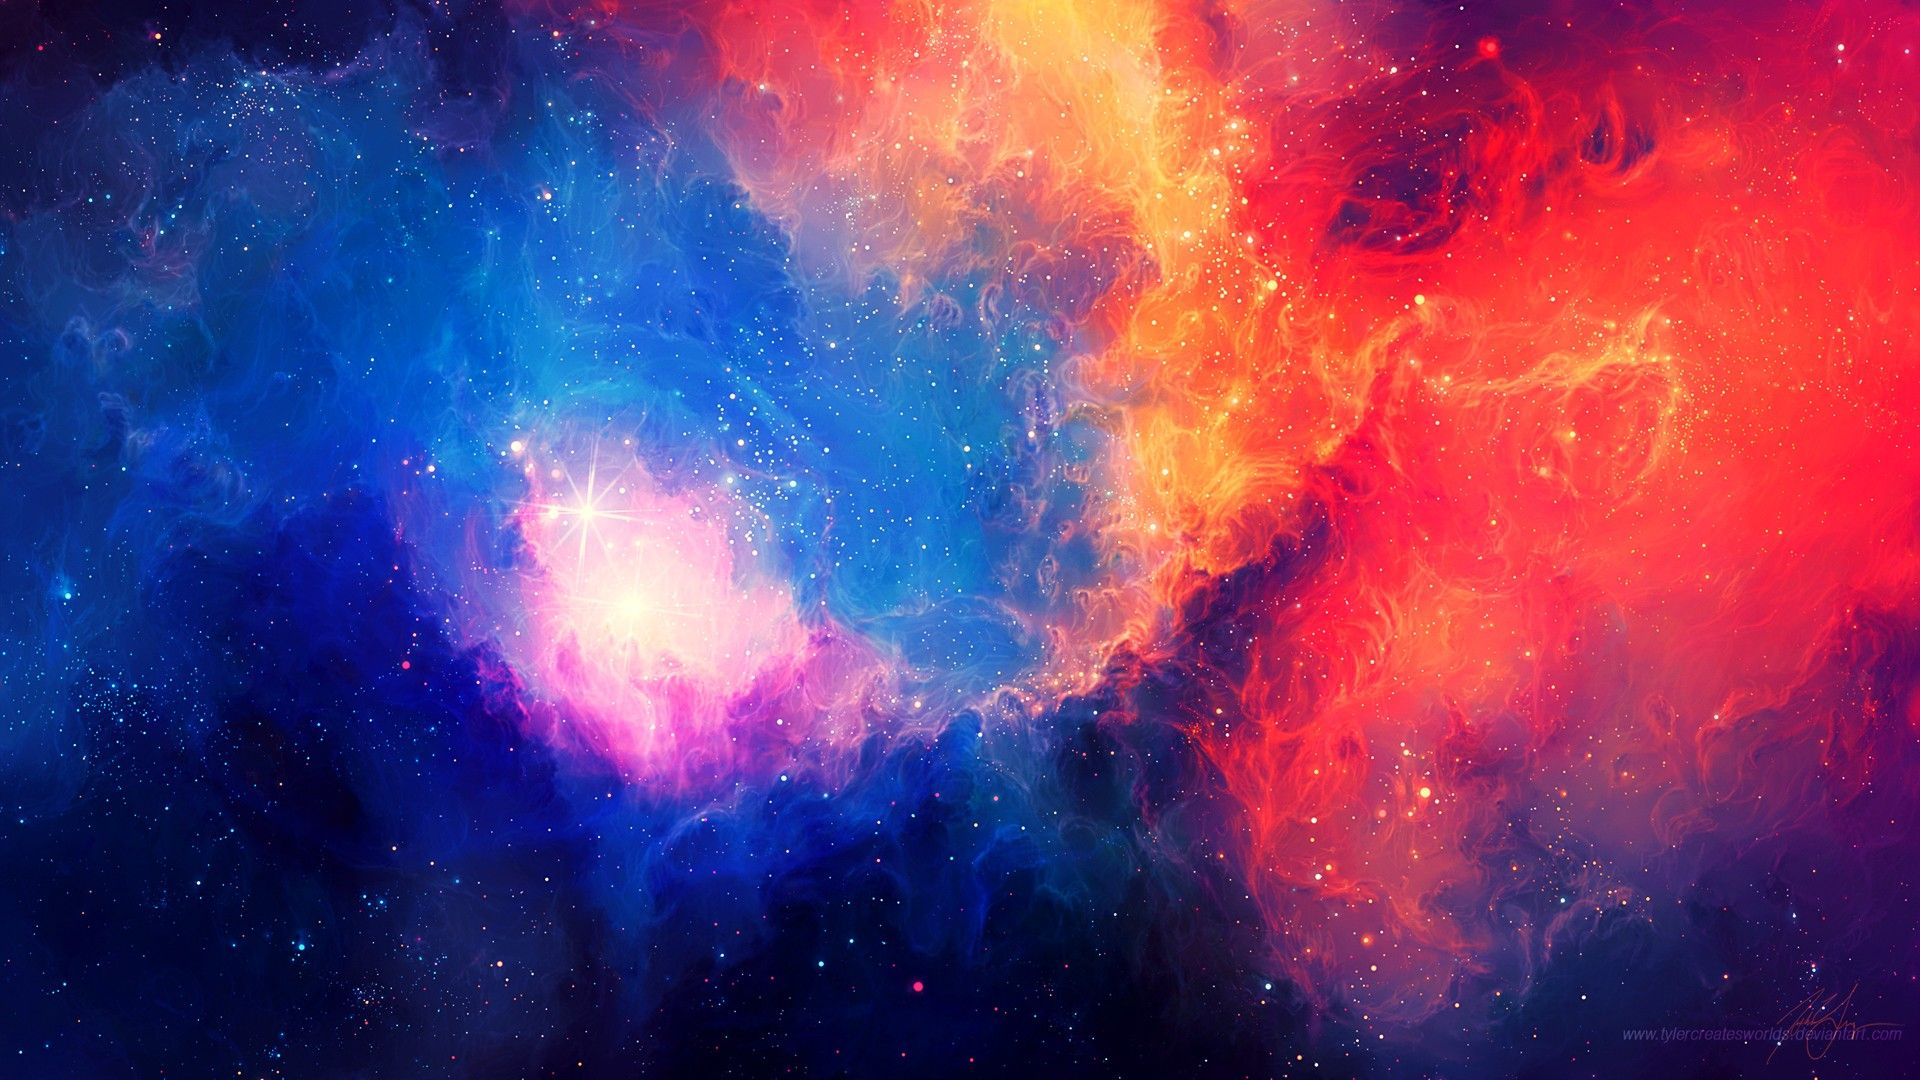 Colorful Galaxy Wallpaper For Iphone 9yg Galaxy Wallpaper Hd Galaxy Wallpaper Galaxy Images